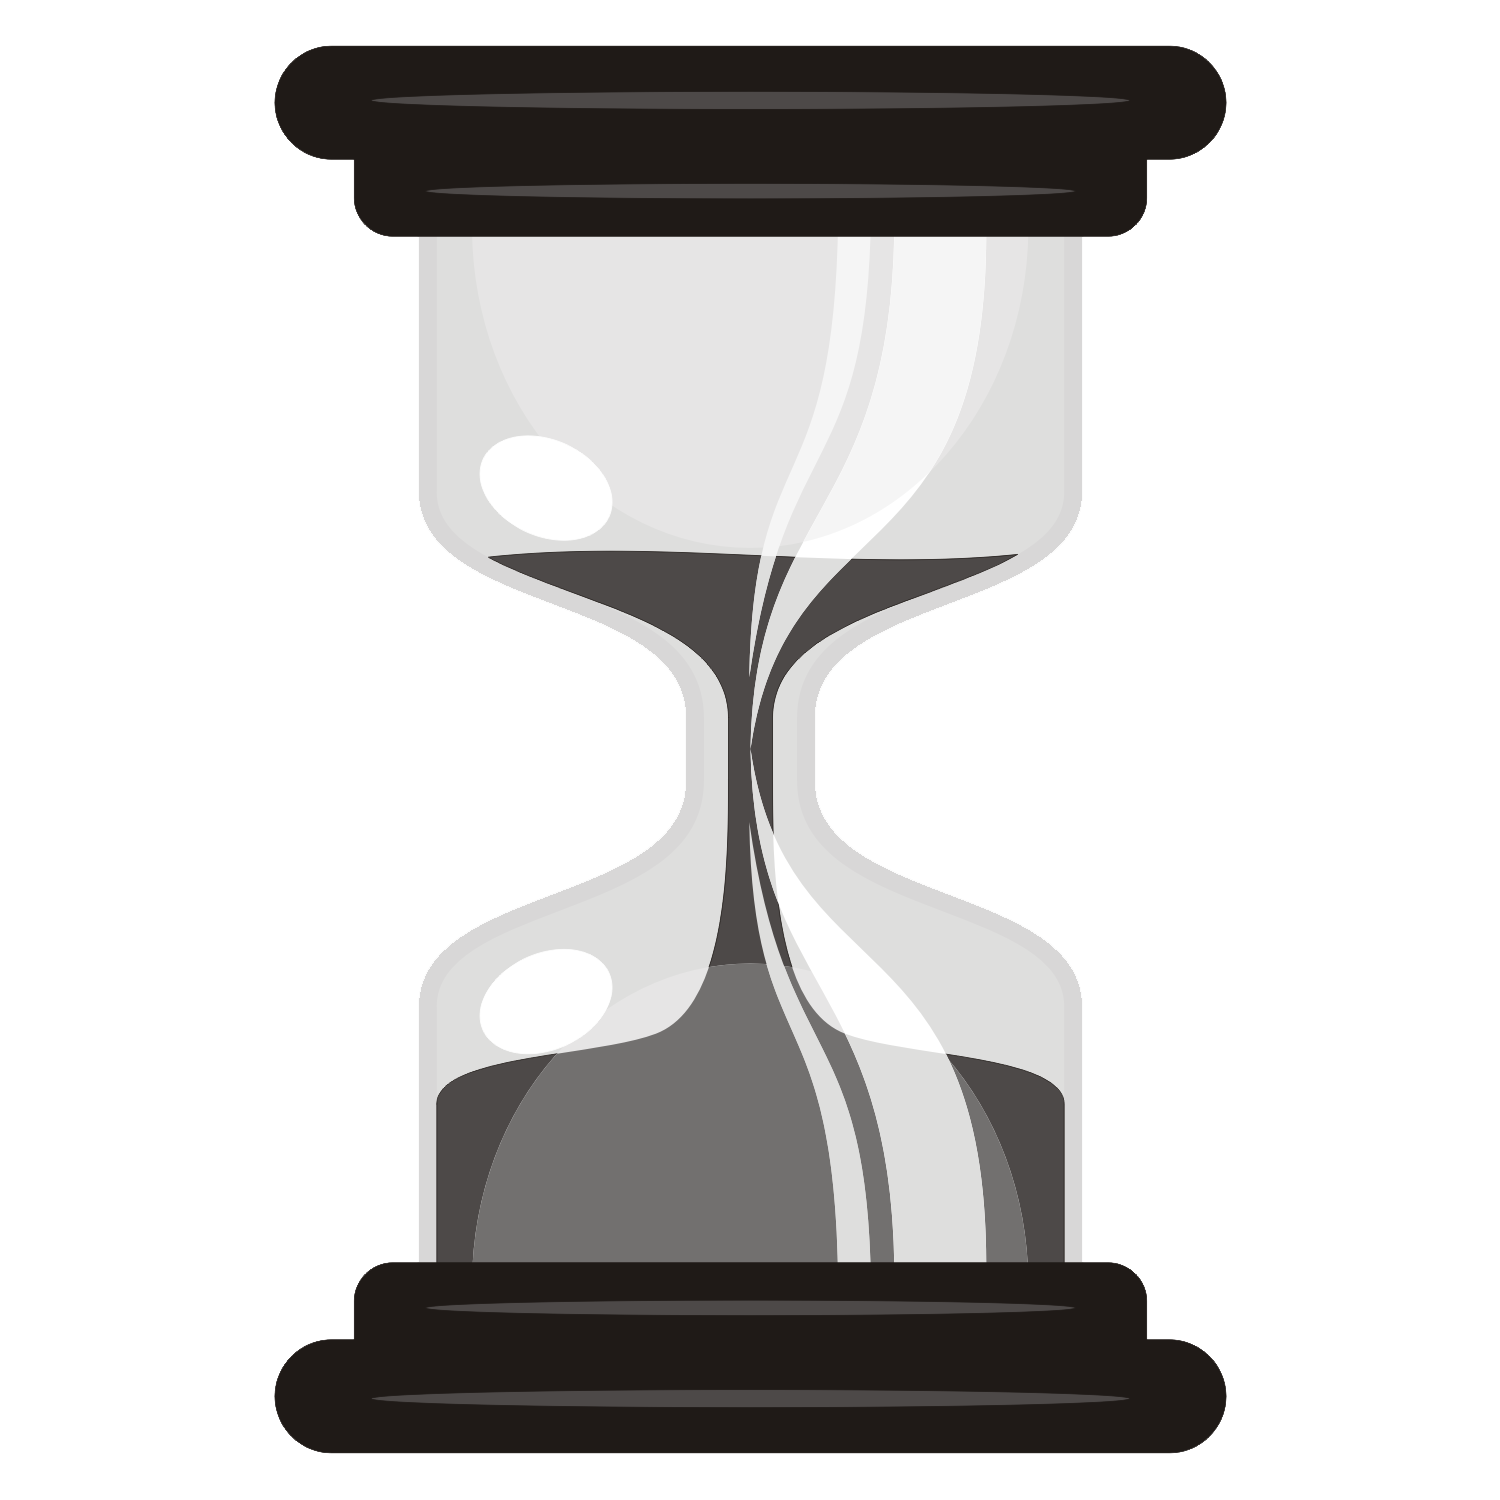 Hourglass PNG File - Hourglass PNG HD